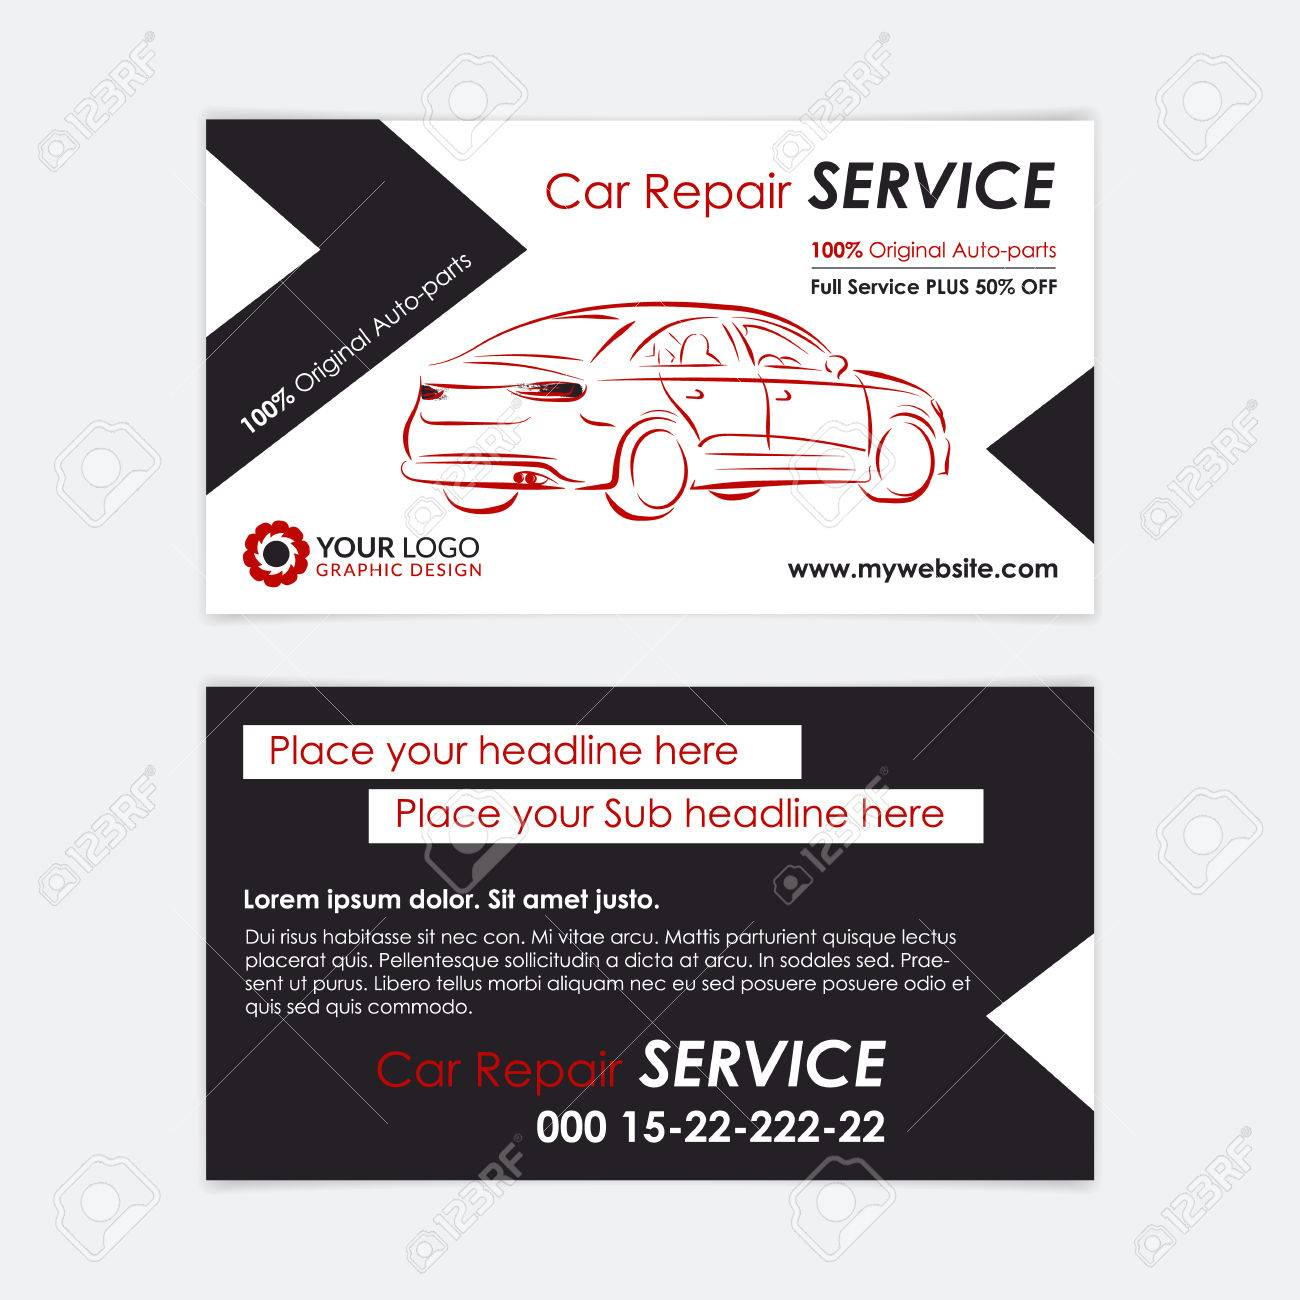 Auto repair business card template create your own business auto repair business card template create your own business cards mockup vector illustration magicingreecefo Choice Image